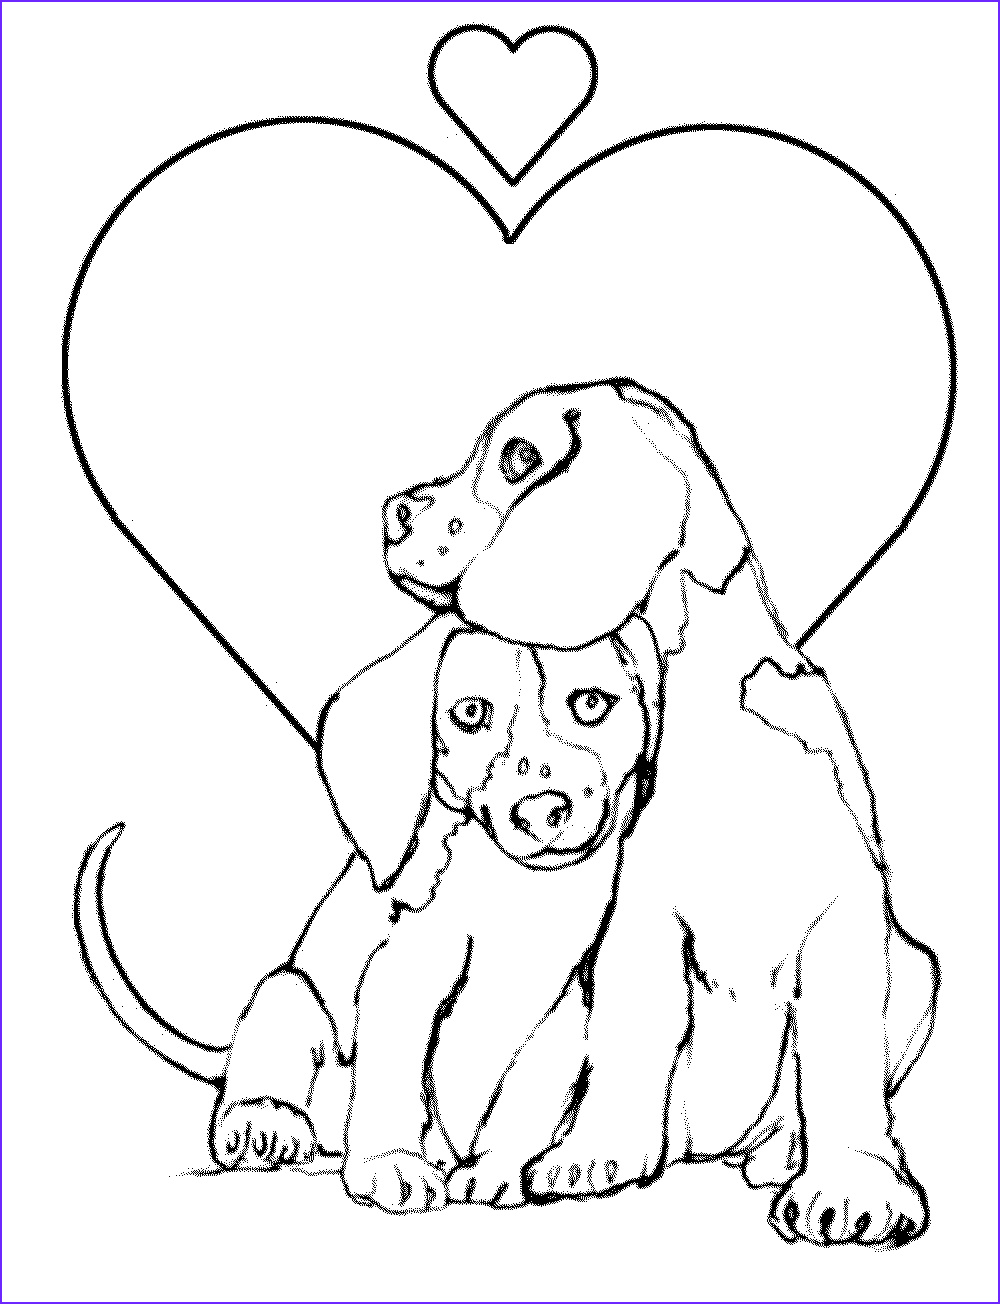 employ dog coloring pages childrens creative time